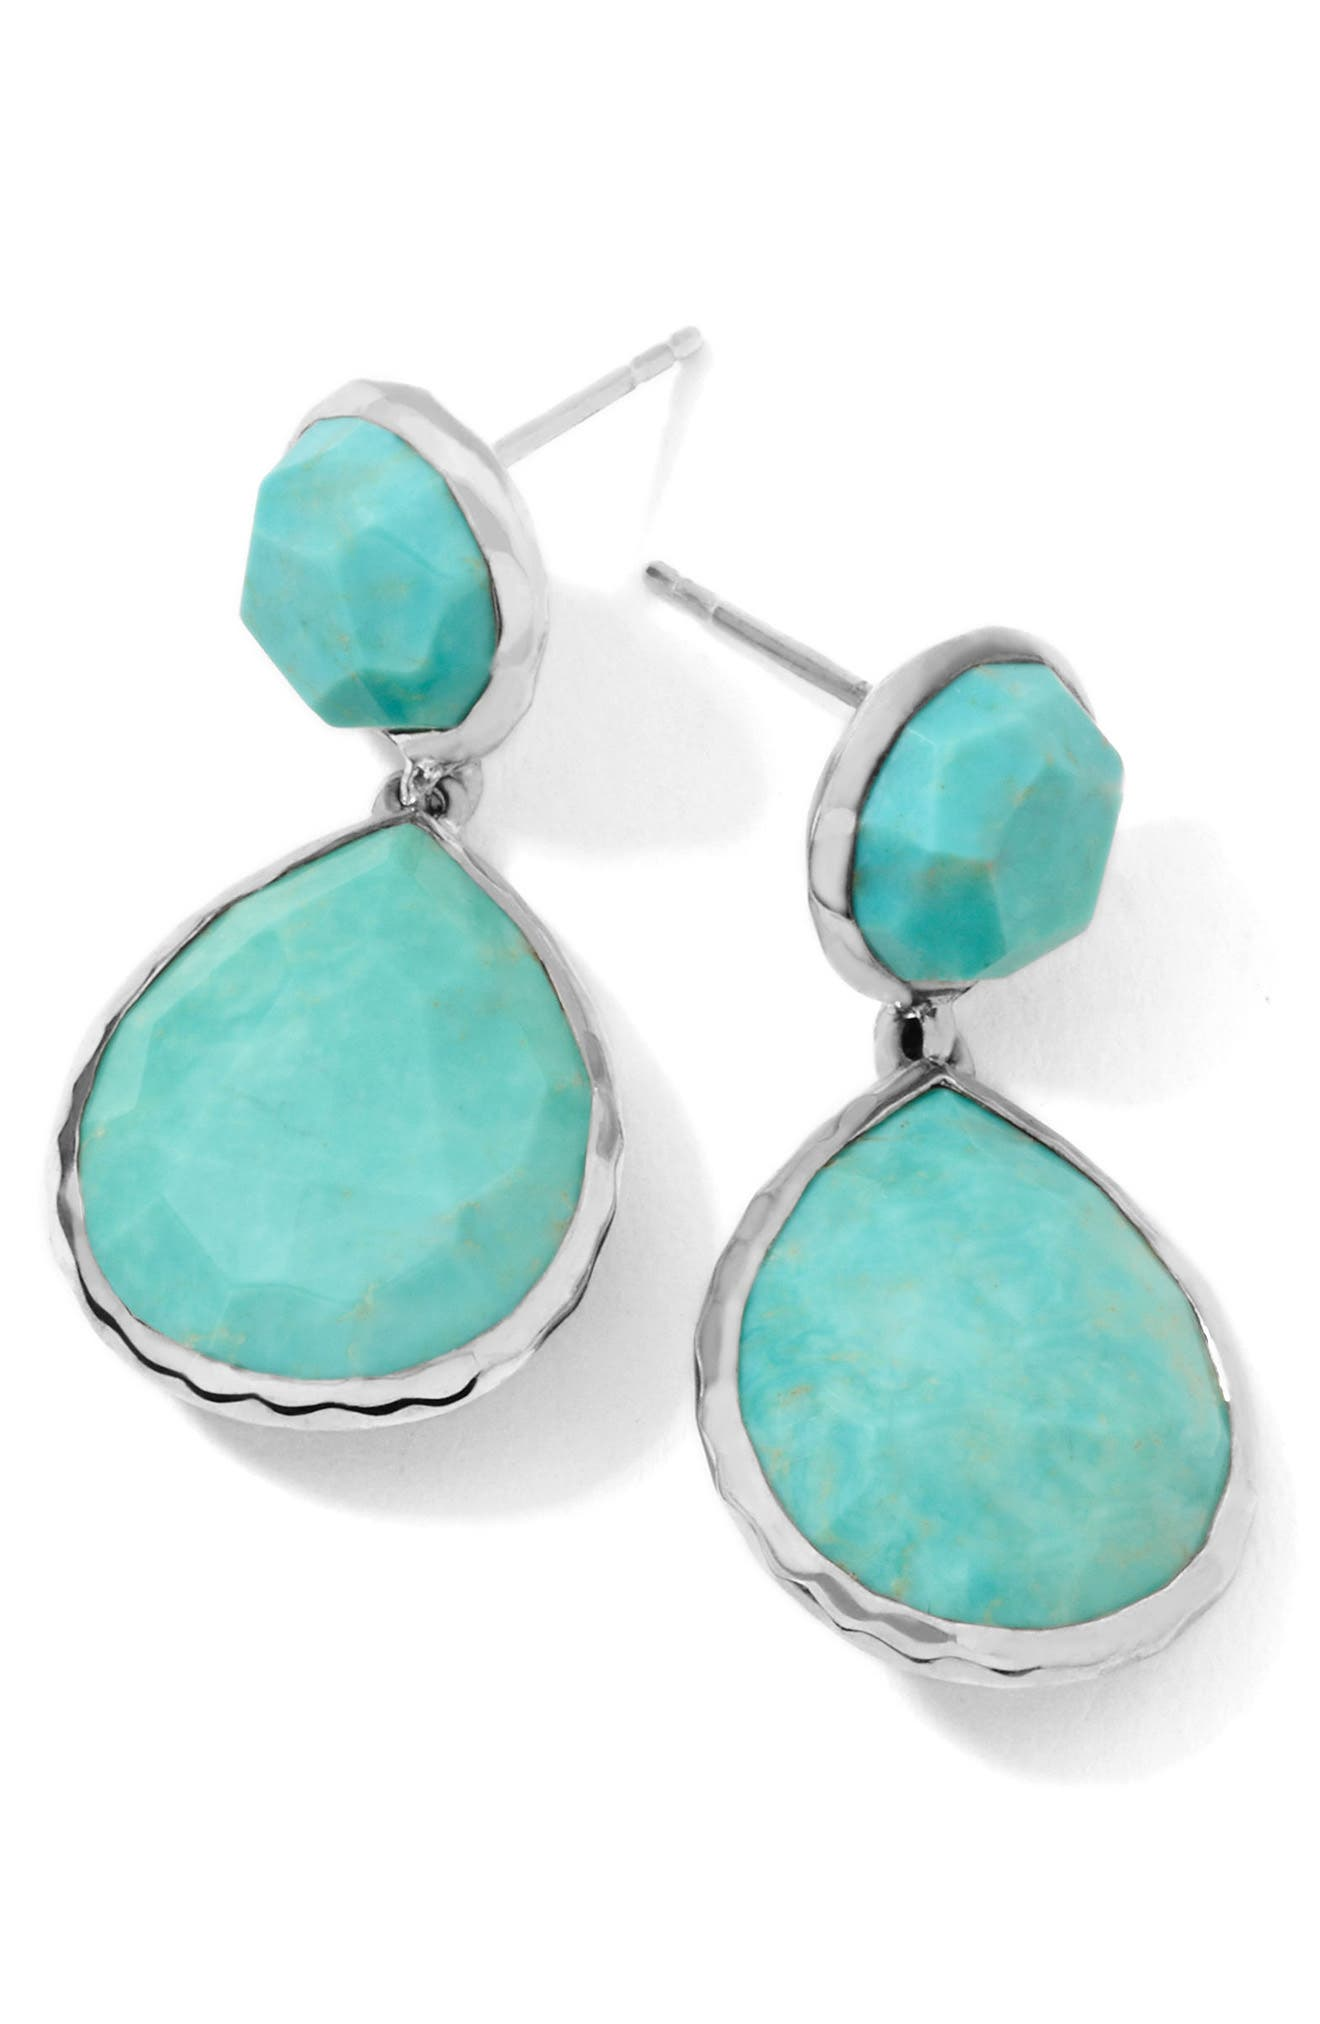 'Rock Candy - Snowman' Drop Earrings,                         Main,                         color, Silver/Turquoise